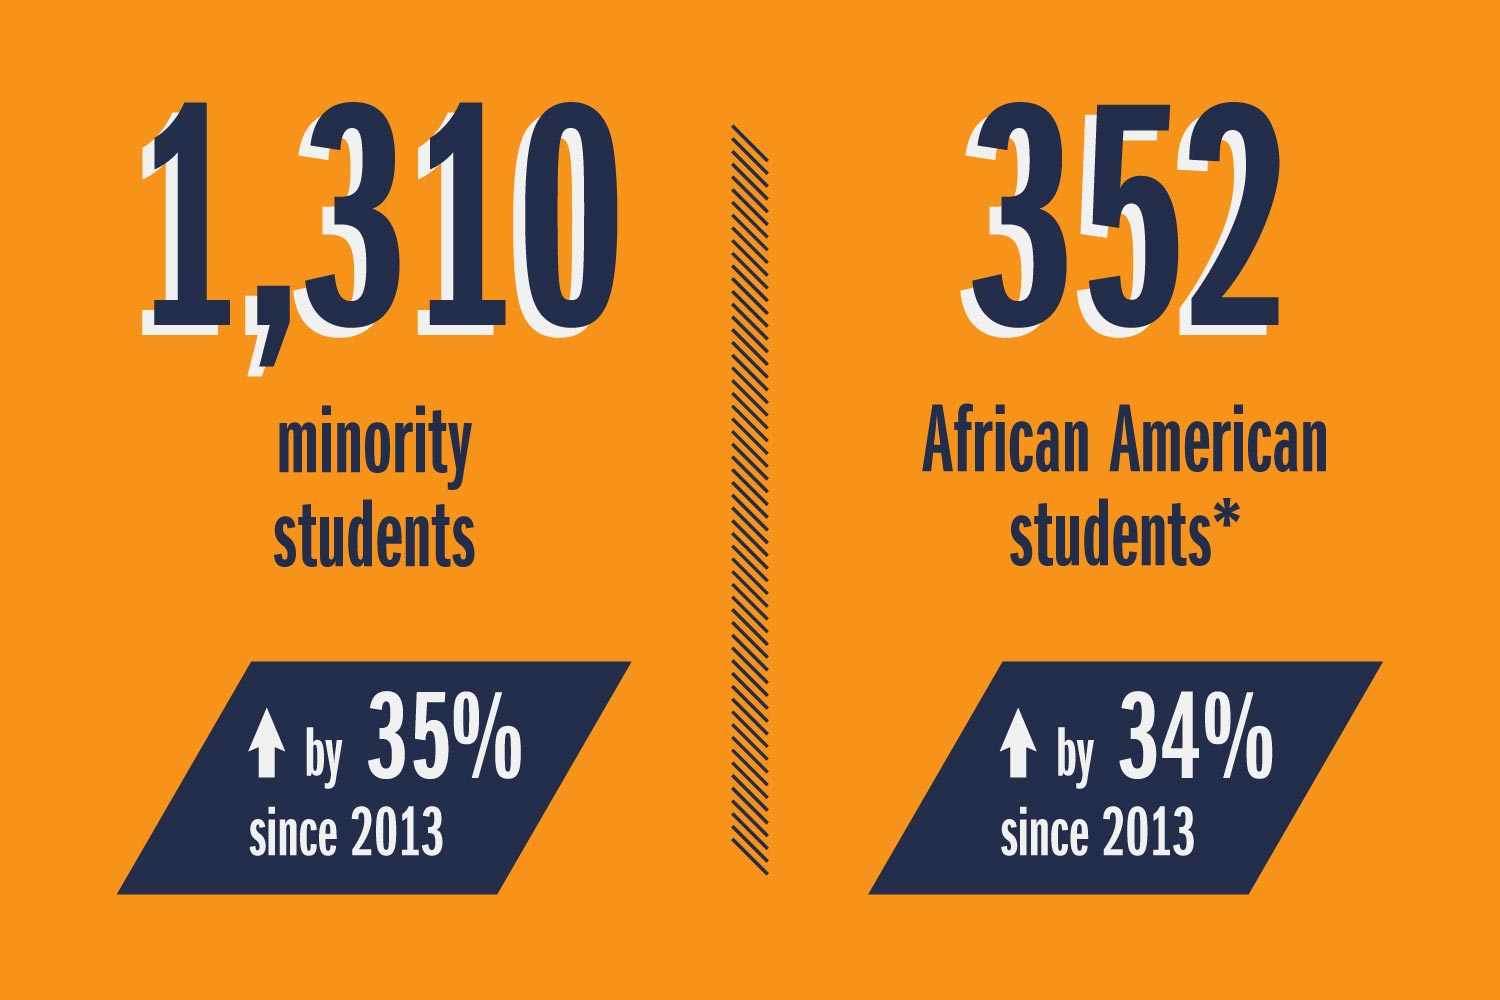 1,310 minority students, 352 African American students